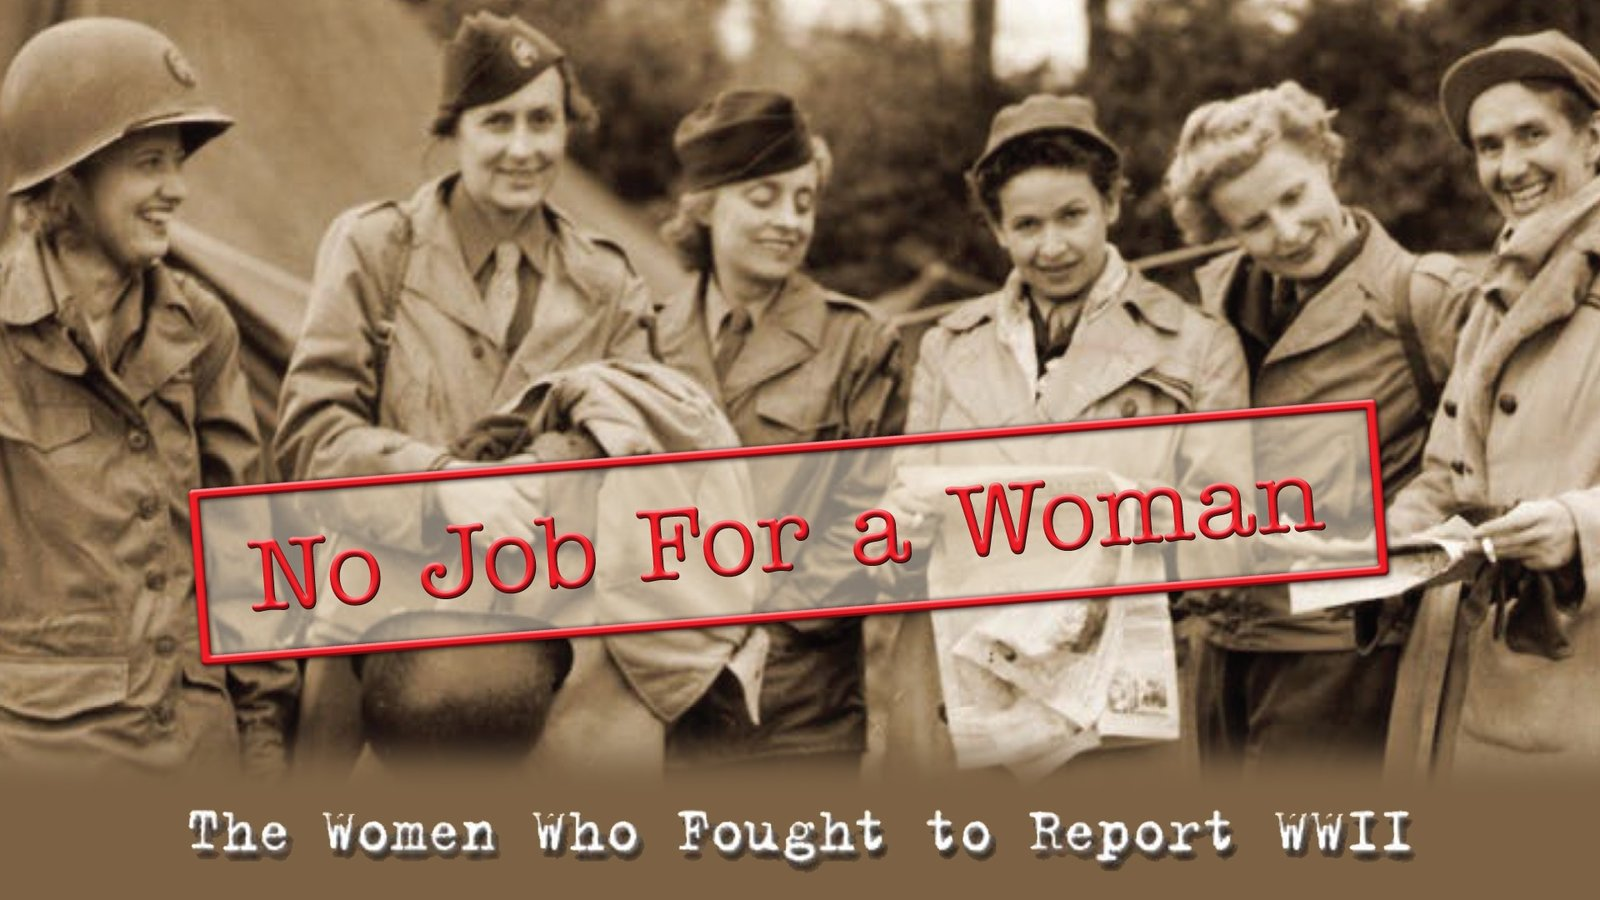 No Job for a Woman - Pioneering Women Reporters in WWII